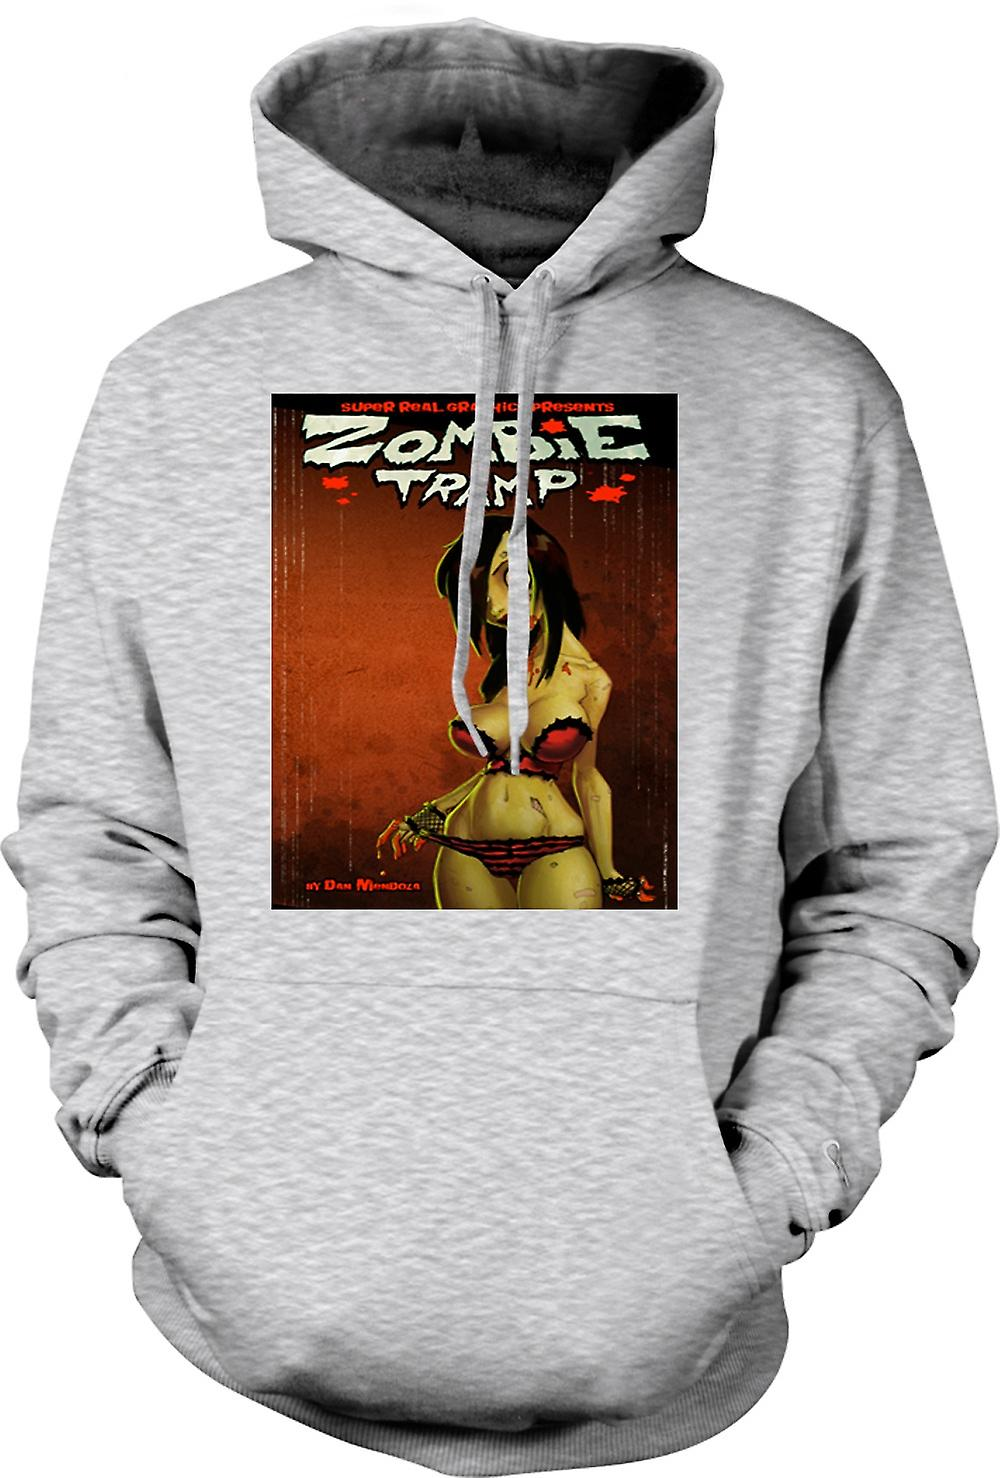 Mens Hoodie - Zombie Tramp - Undead - Pin-Up